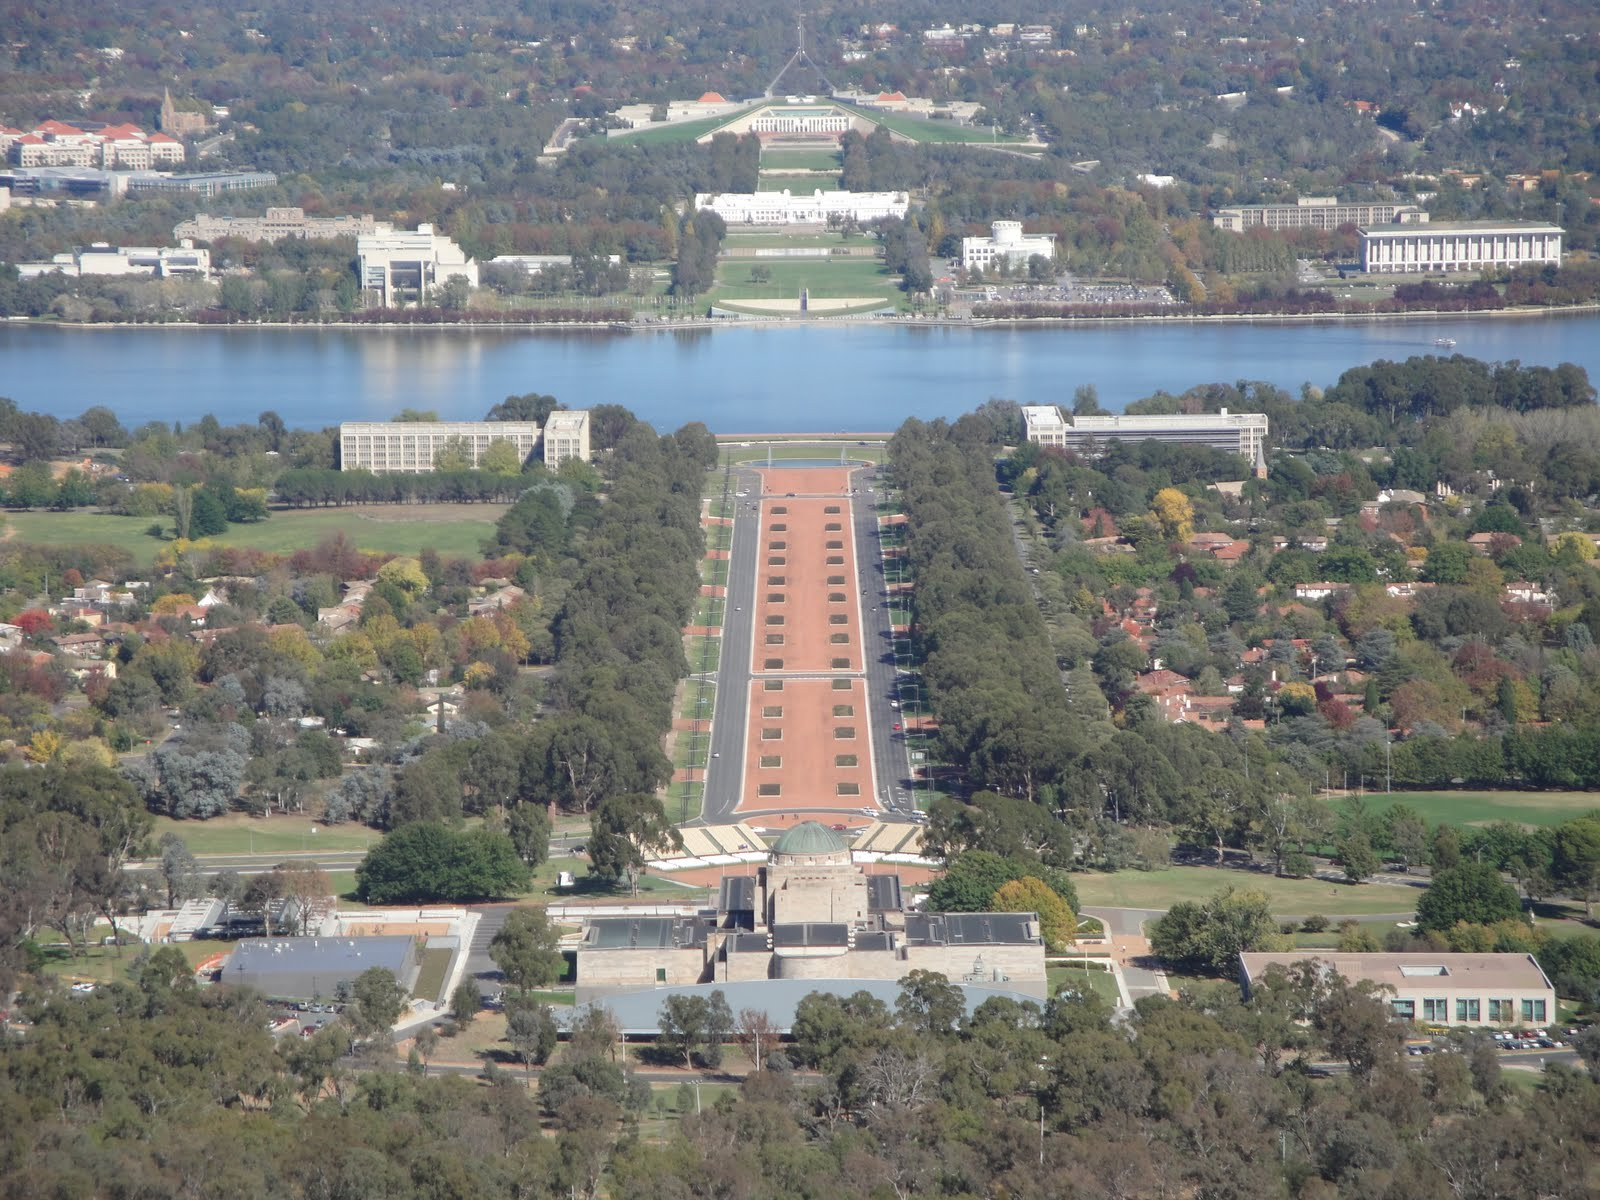 Canberra Parliament House